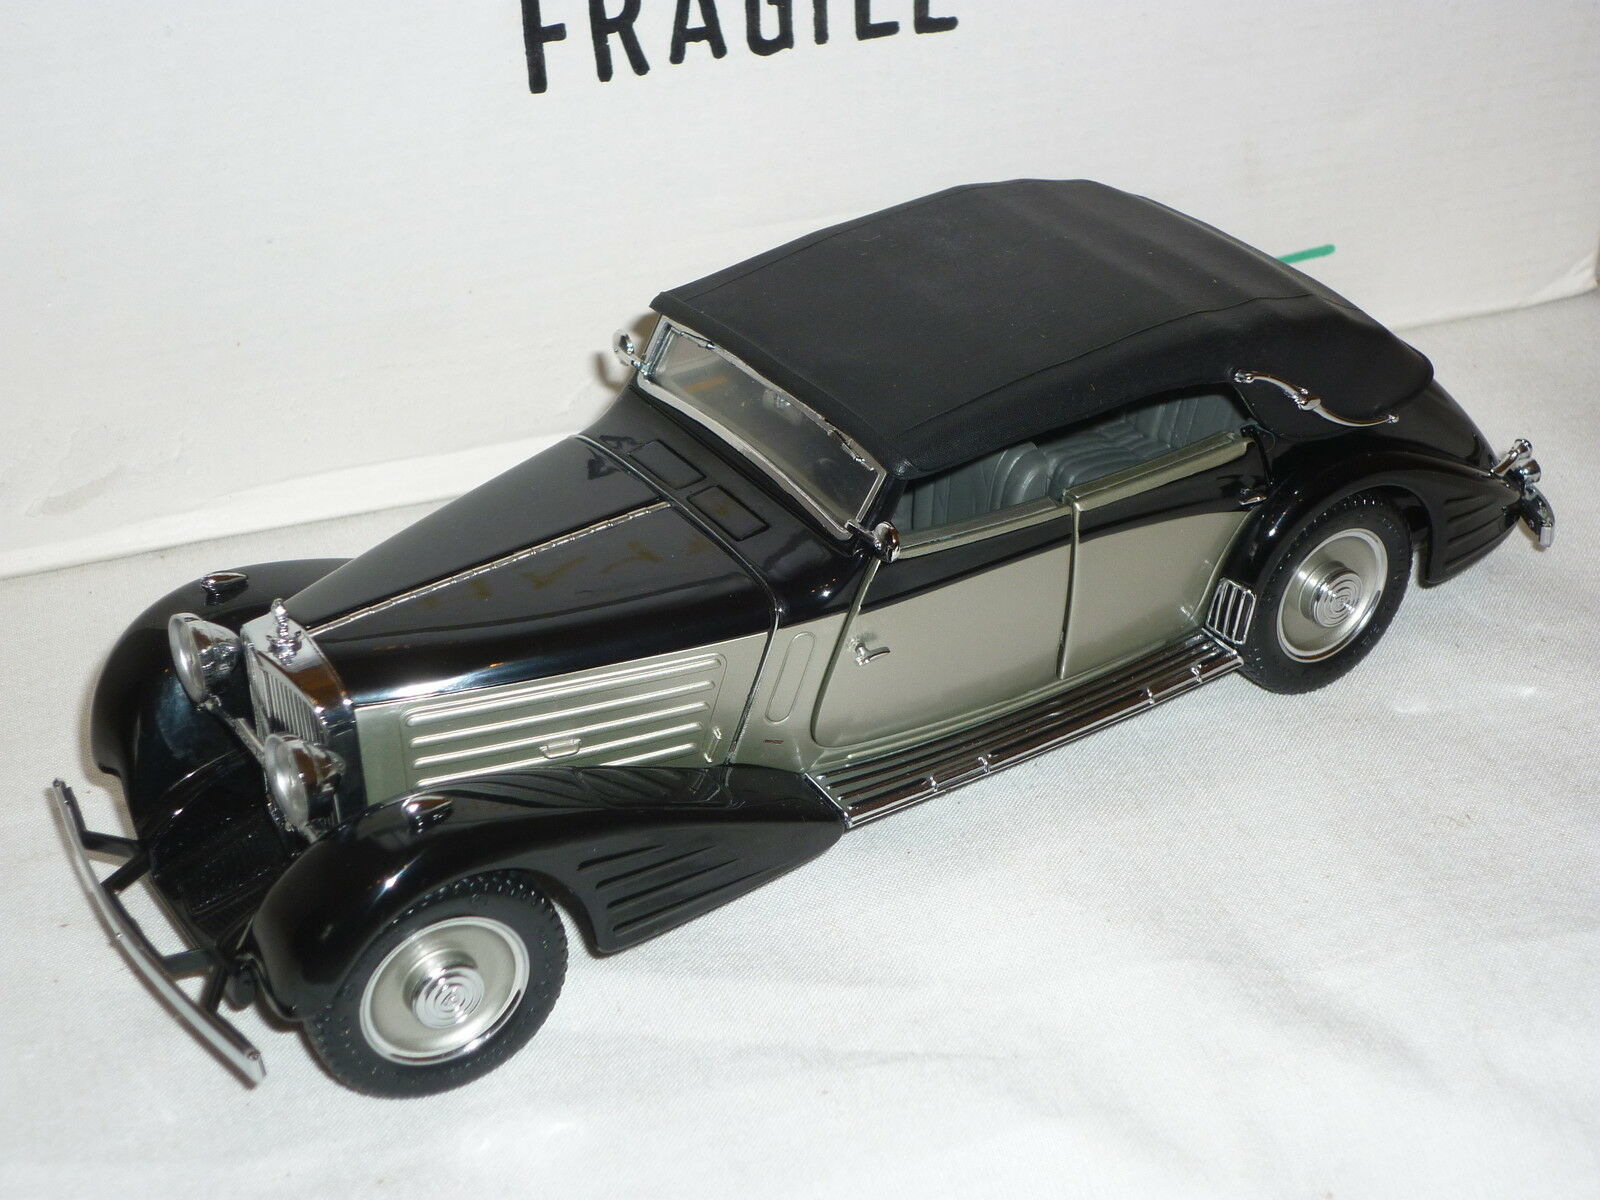 Un Franklin Comme neuf scale model of a 1939 Maybach Zeppelin, boxed